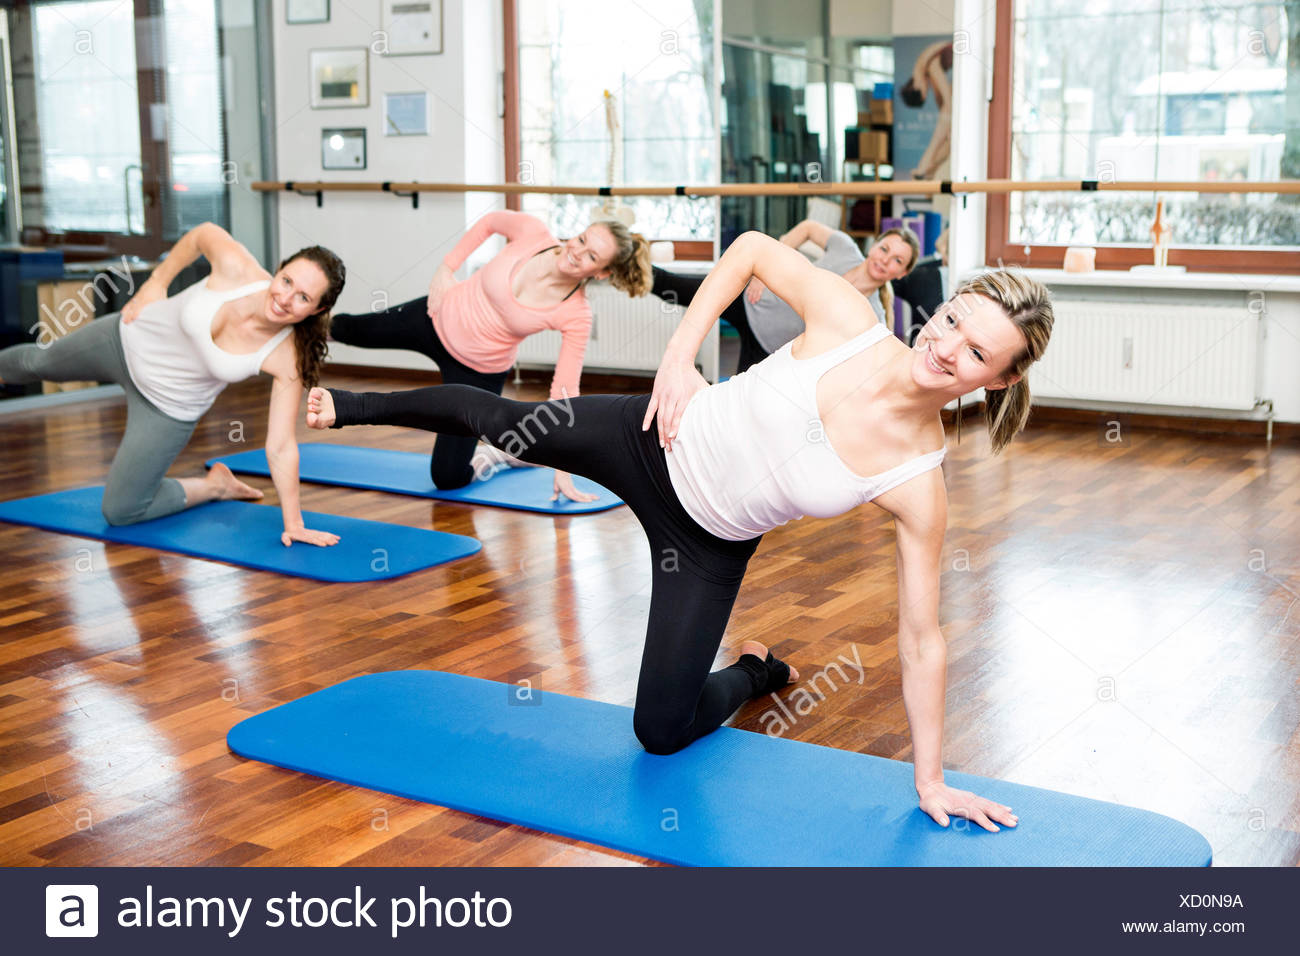 Group of women doing Pilates exercises - Stock Image